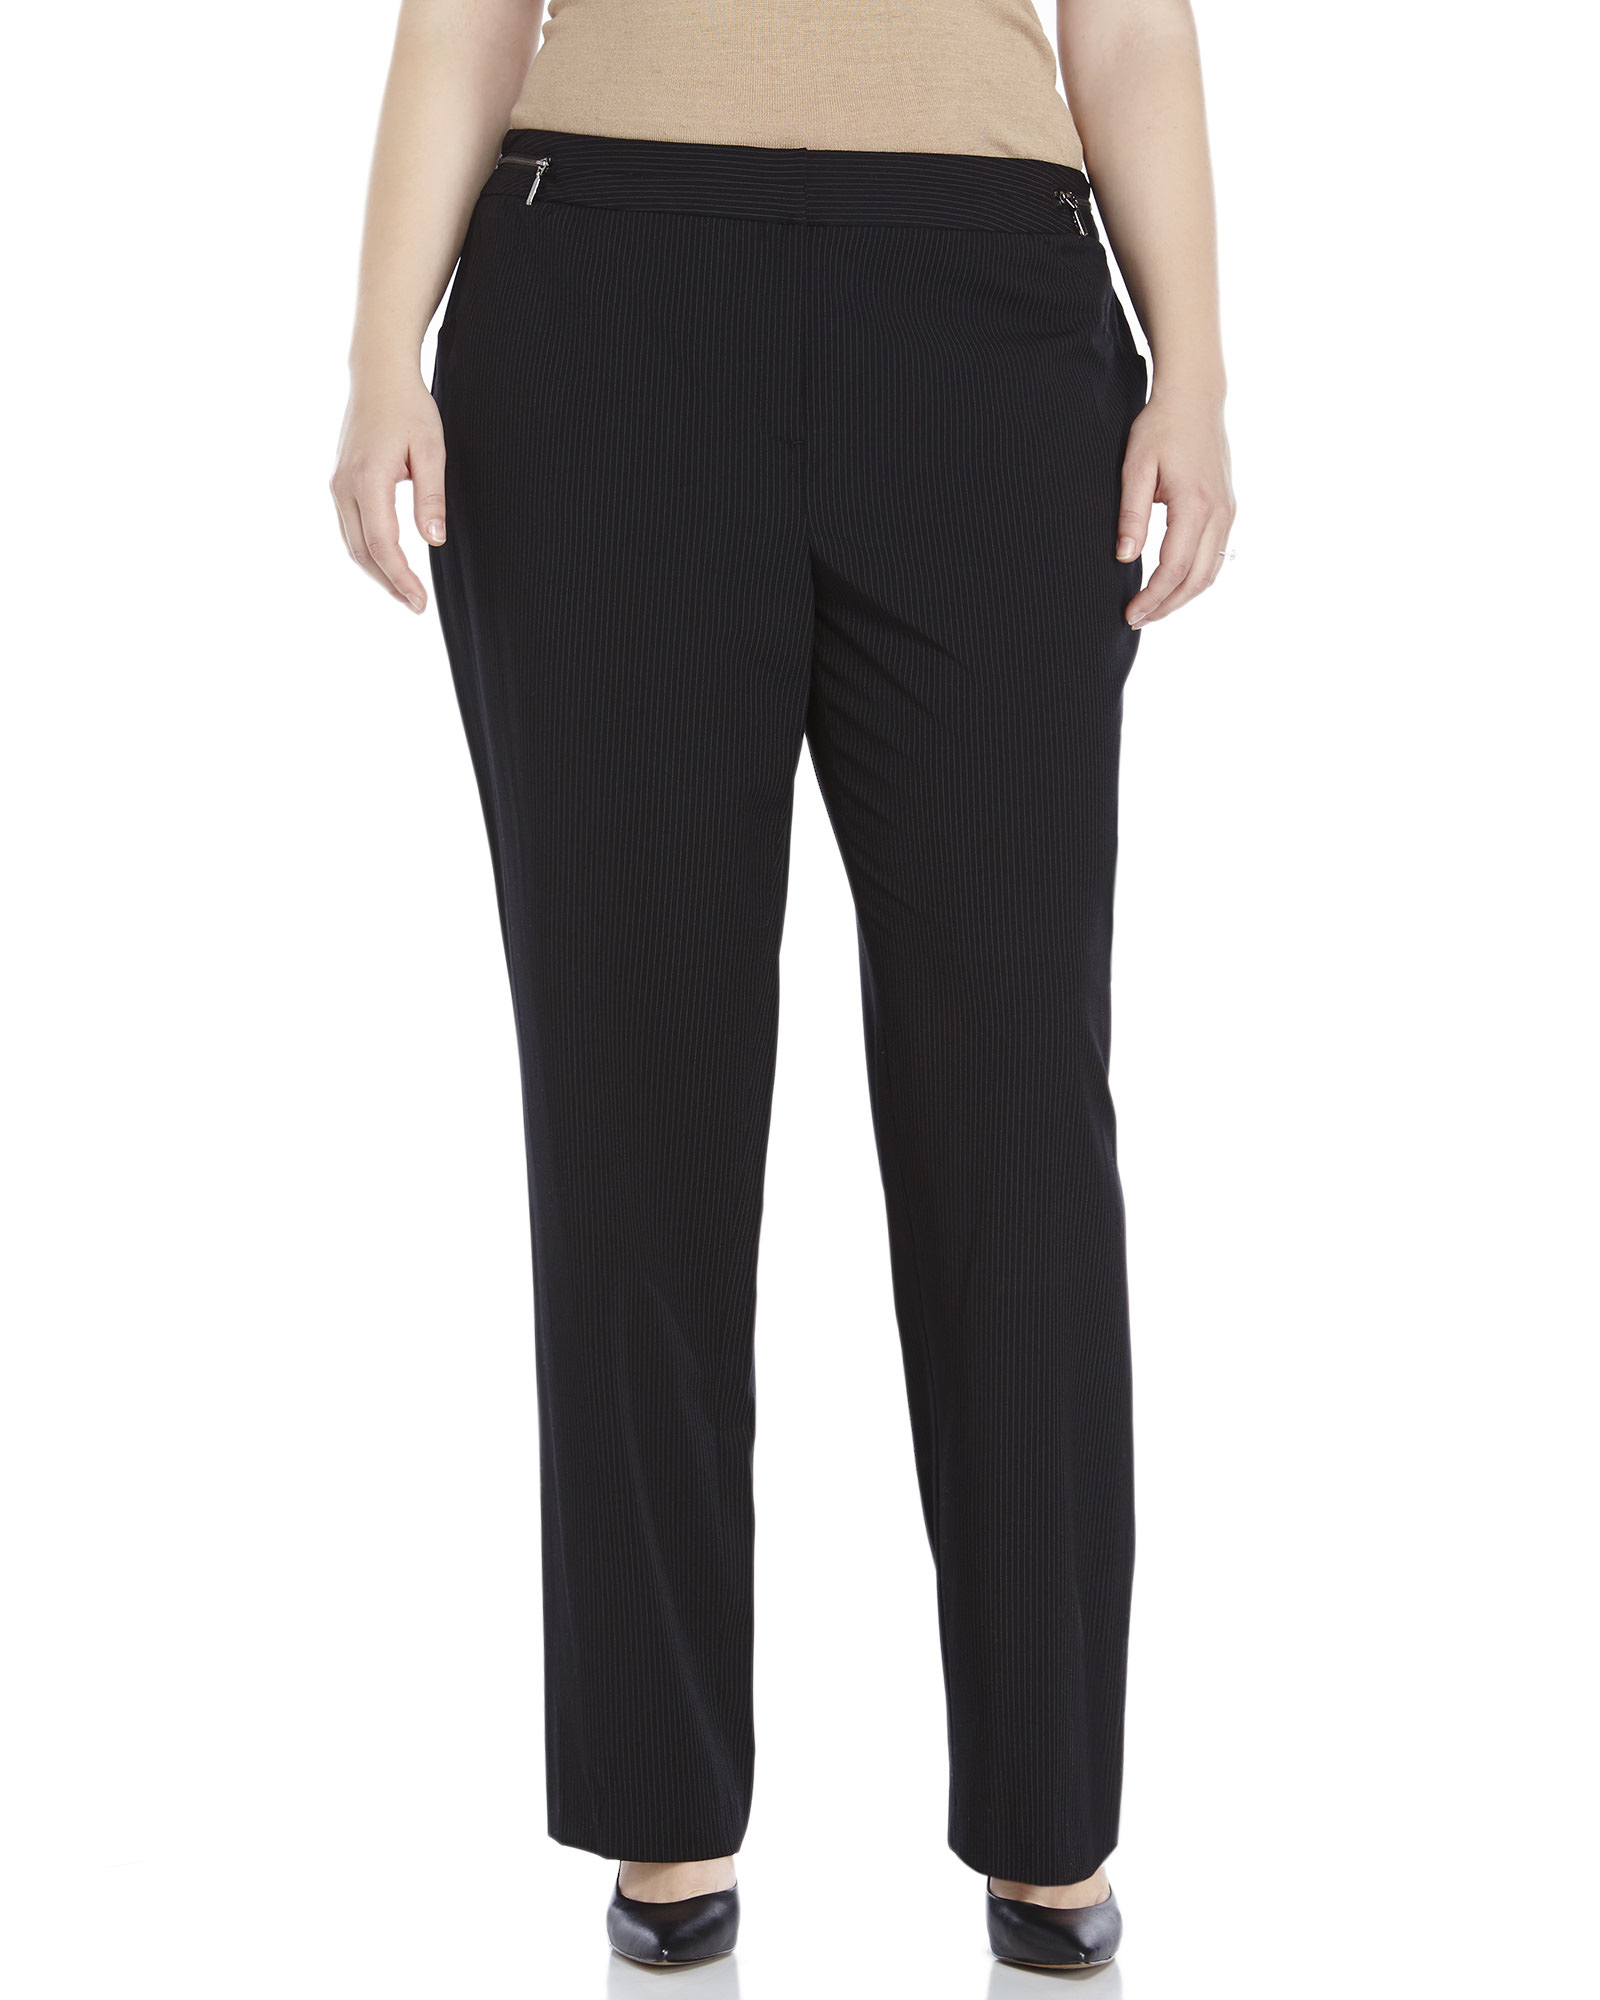 women s petite black linen pants photo - 2